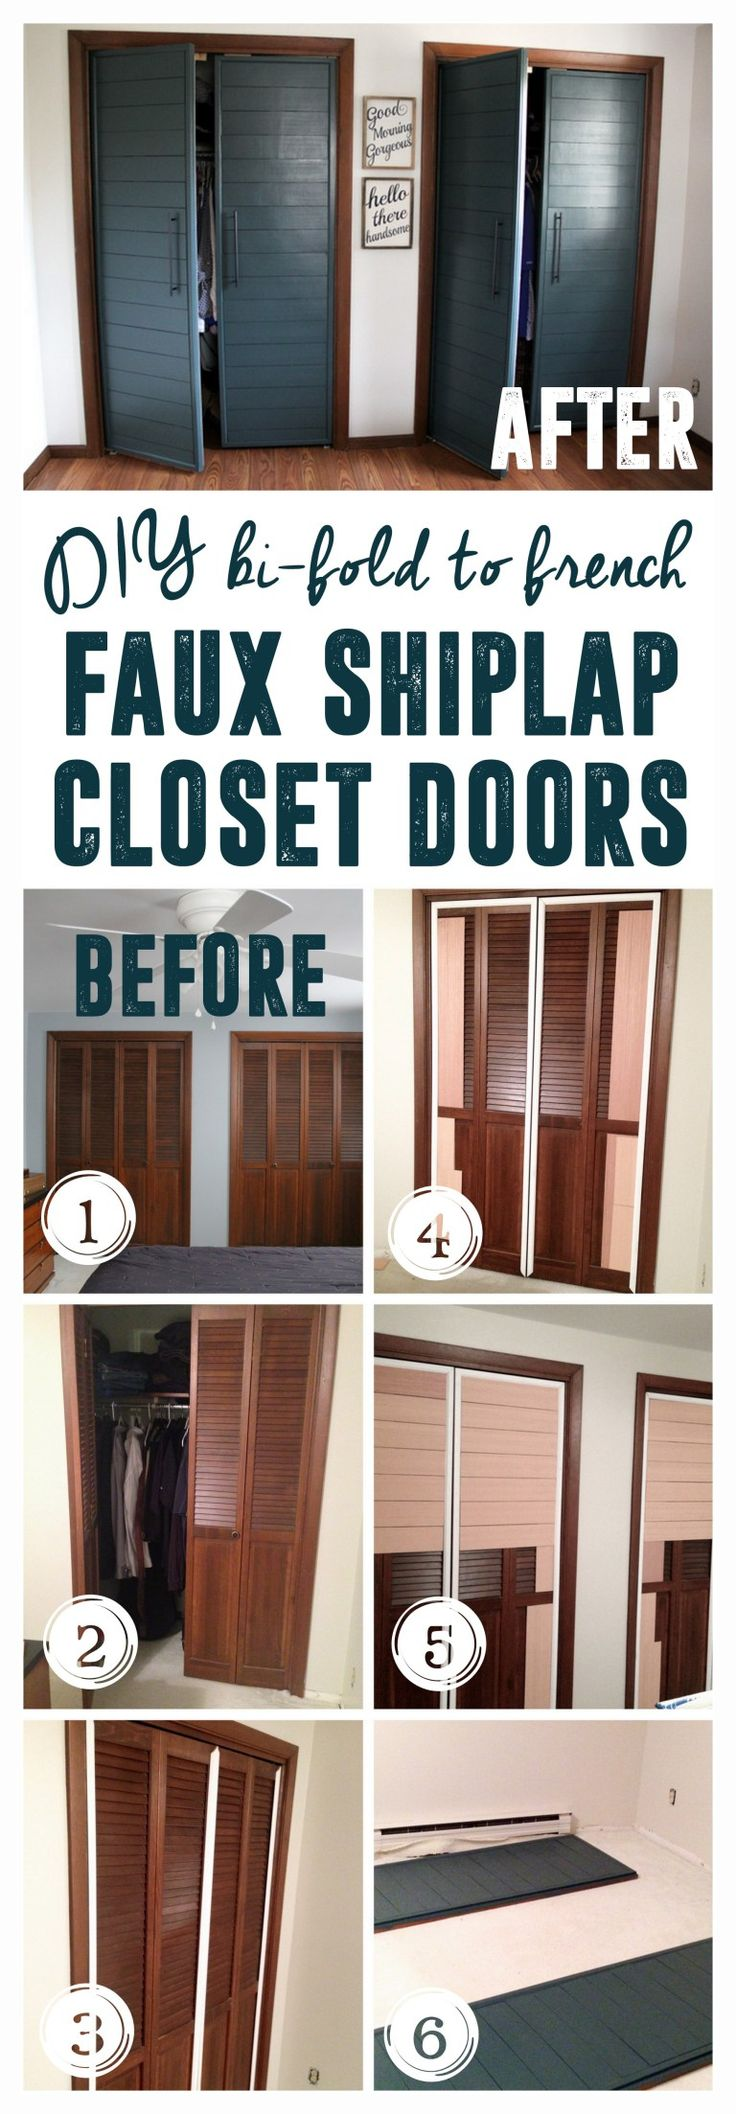 Your home improvements refference mirrored closet doors - Bi Fold To Faux Shiplap French Closet Doors